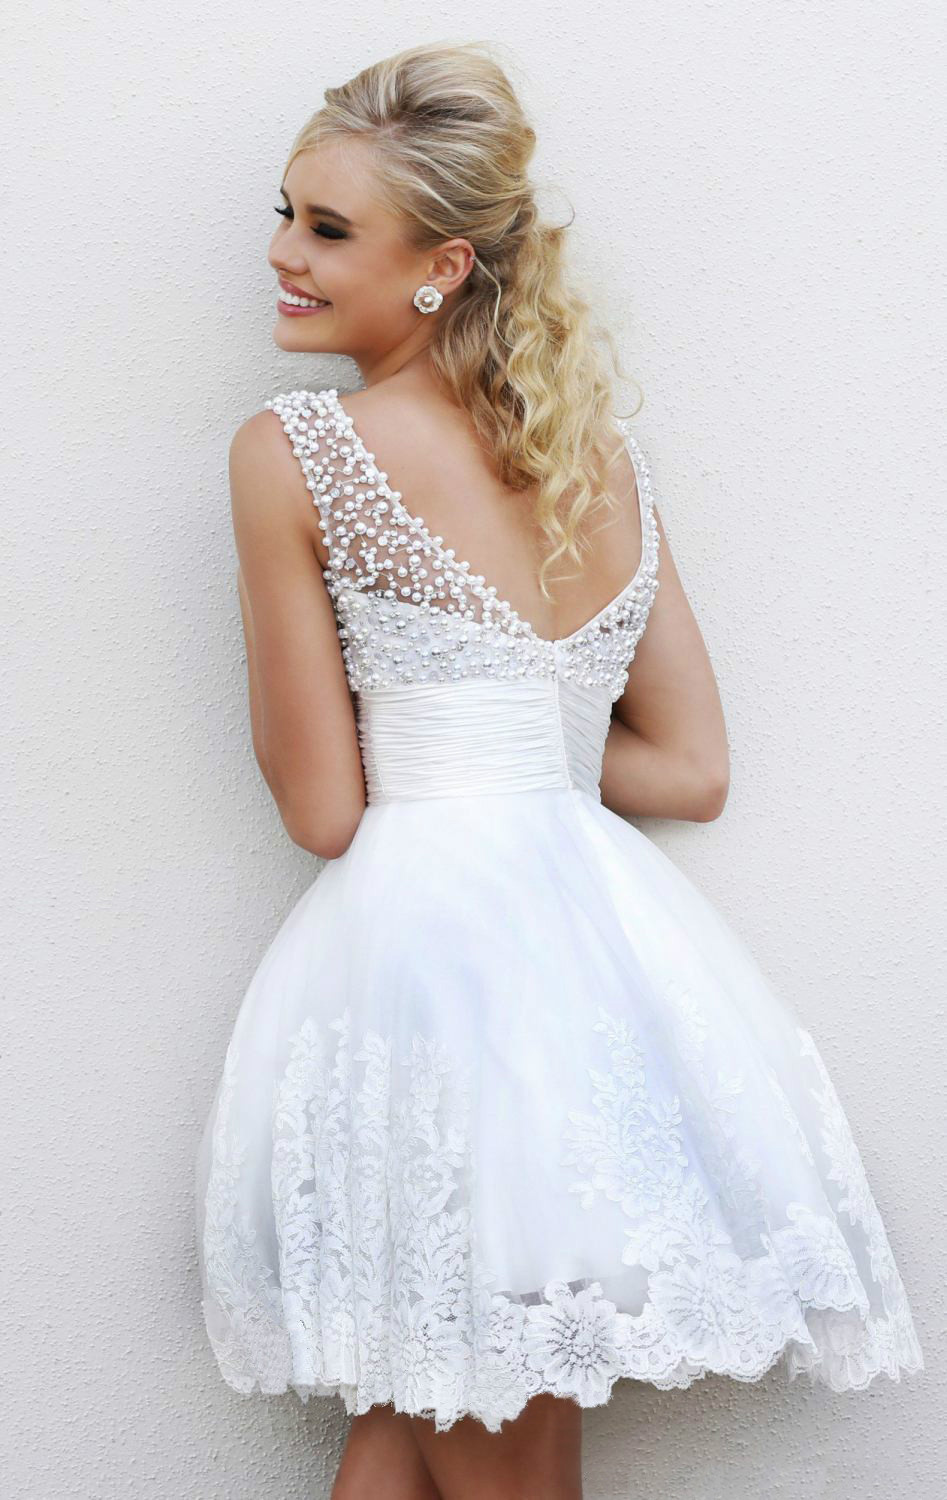 short wedding gowns for sale